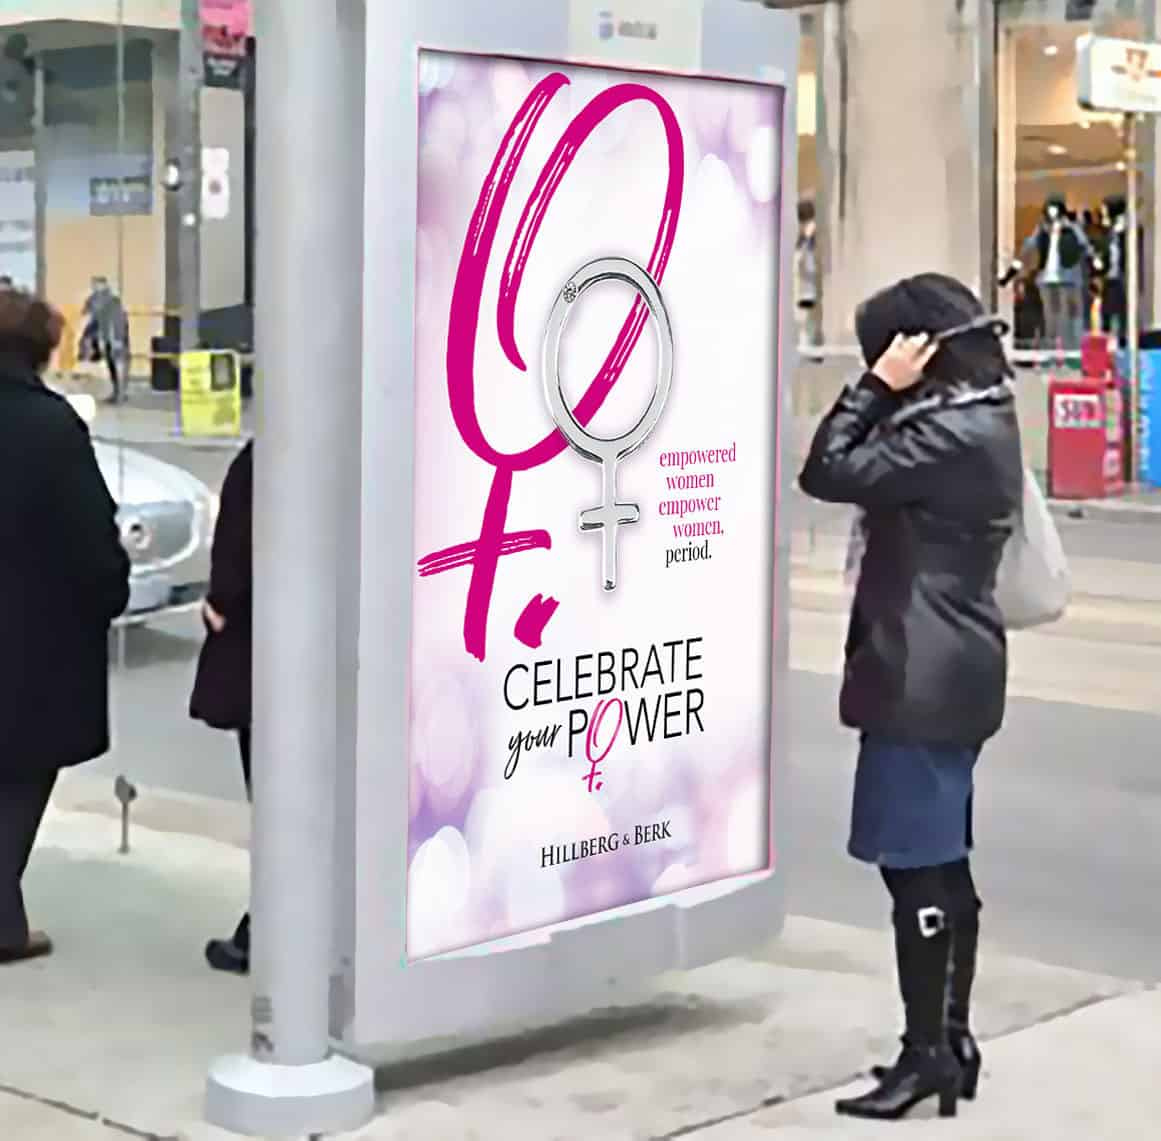 H&B IWD bus shelter poster